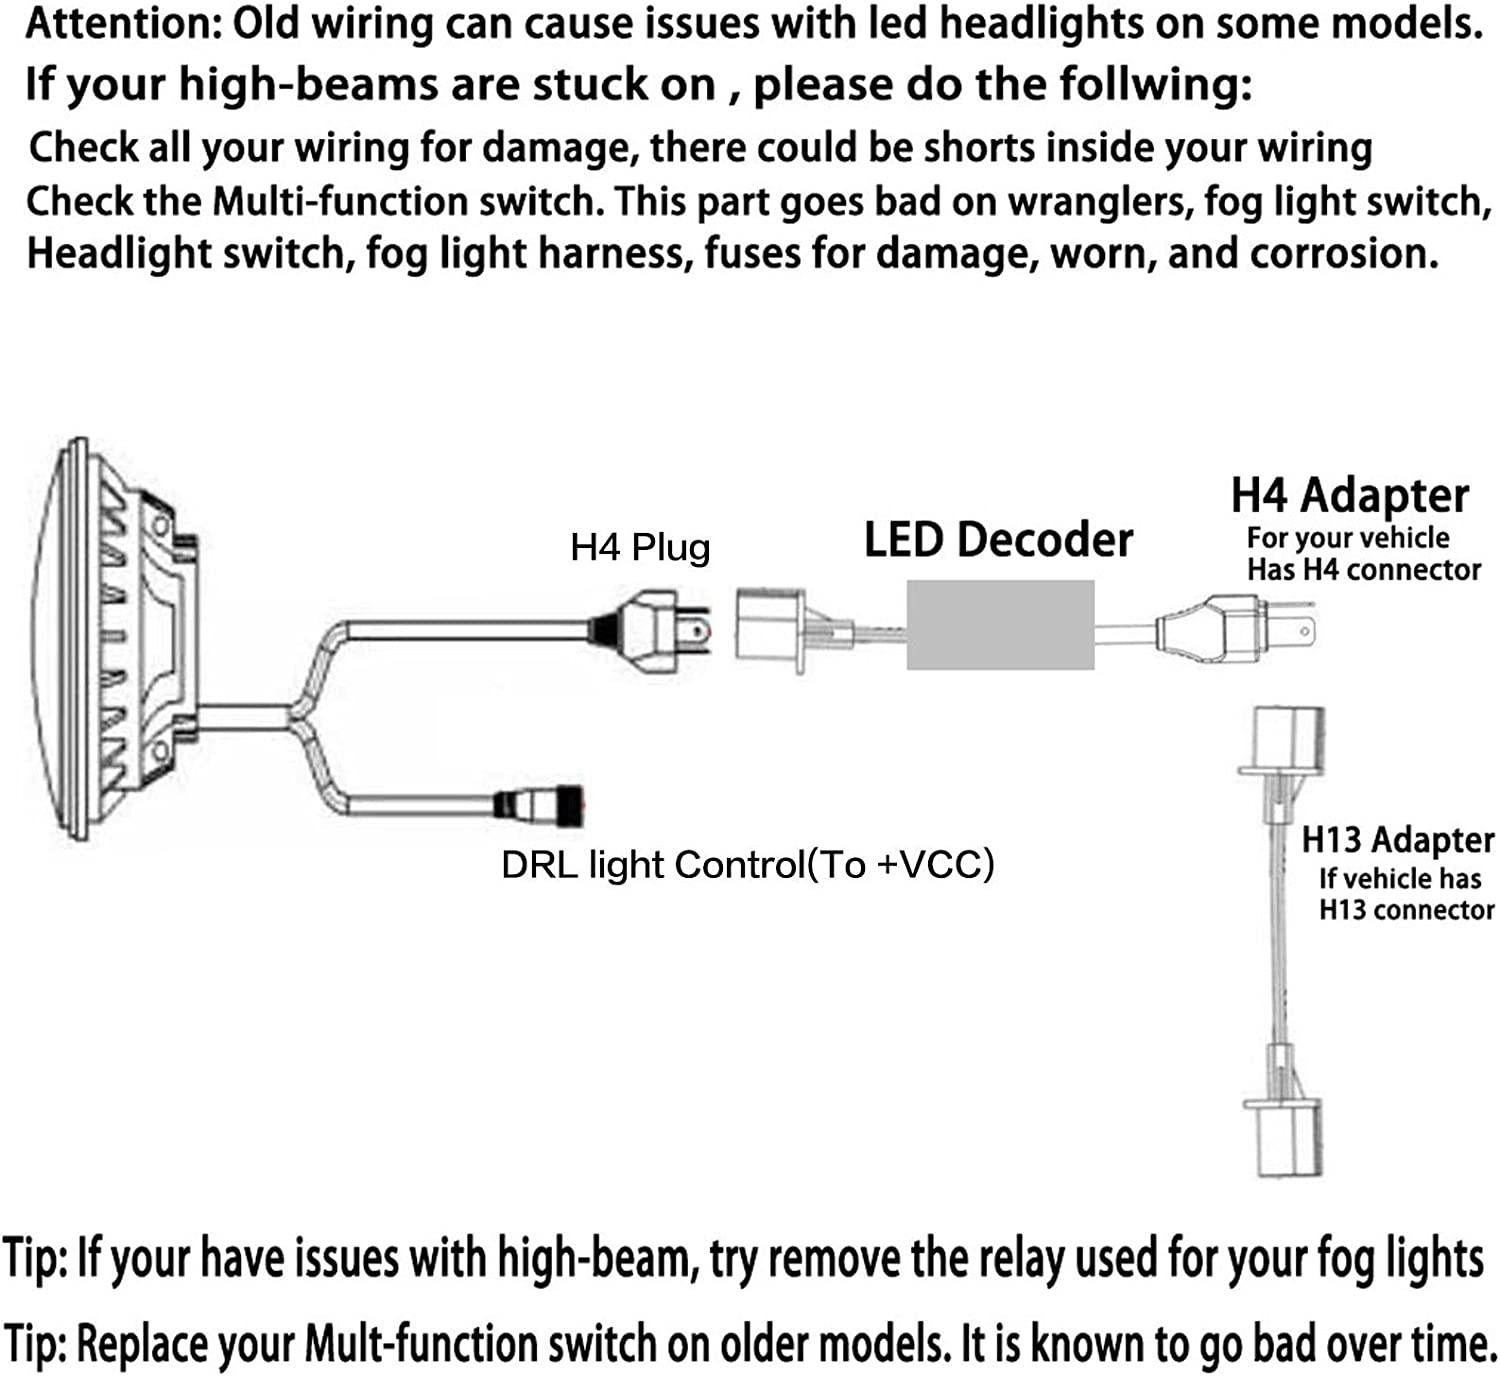 2010 Kenworth Fog Light Wiring Diagram from images-na.ssl-images-amazon.com